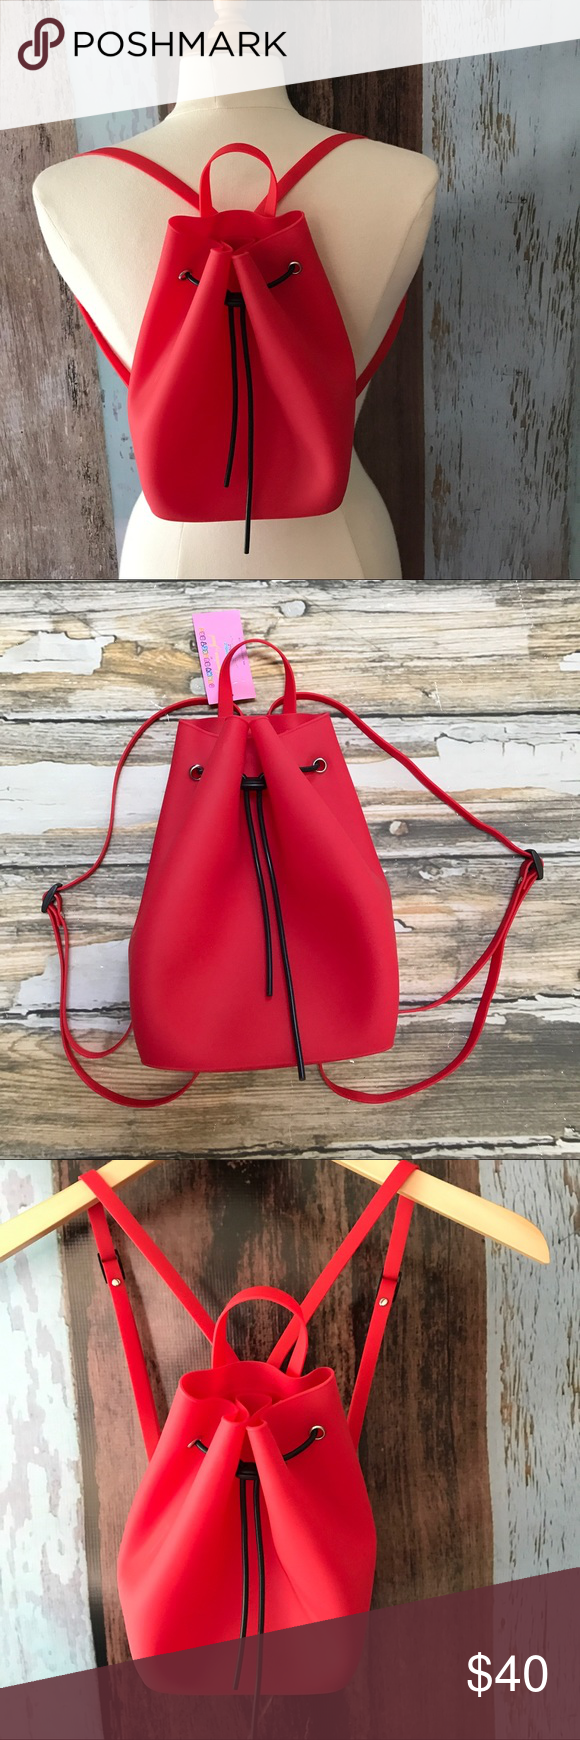 Red flannel backpack  New Bucket Bag Backpack Red Rubber NWT  Bucket bags Buckets and